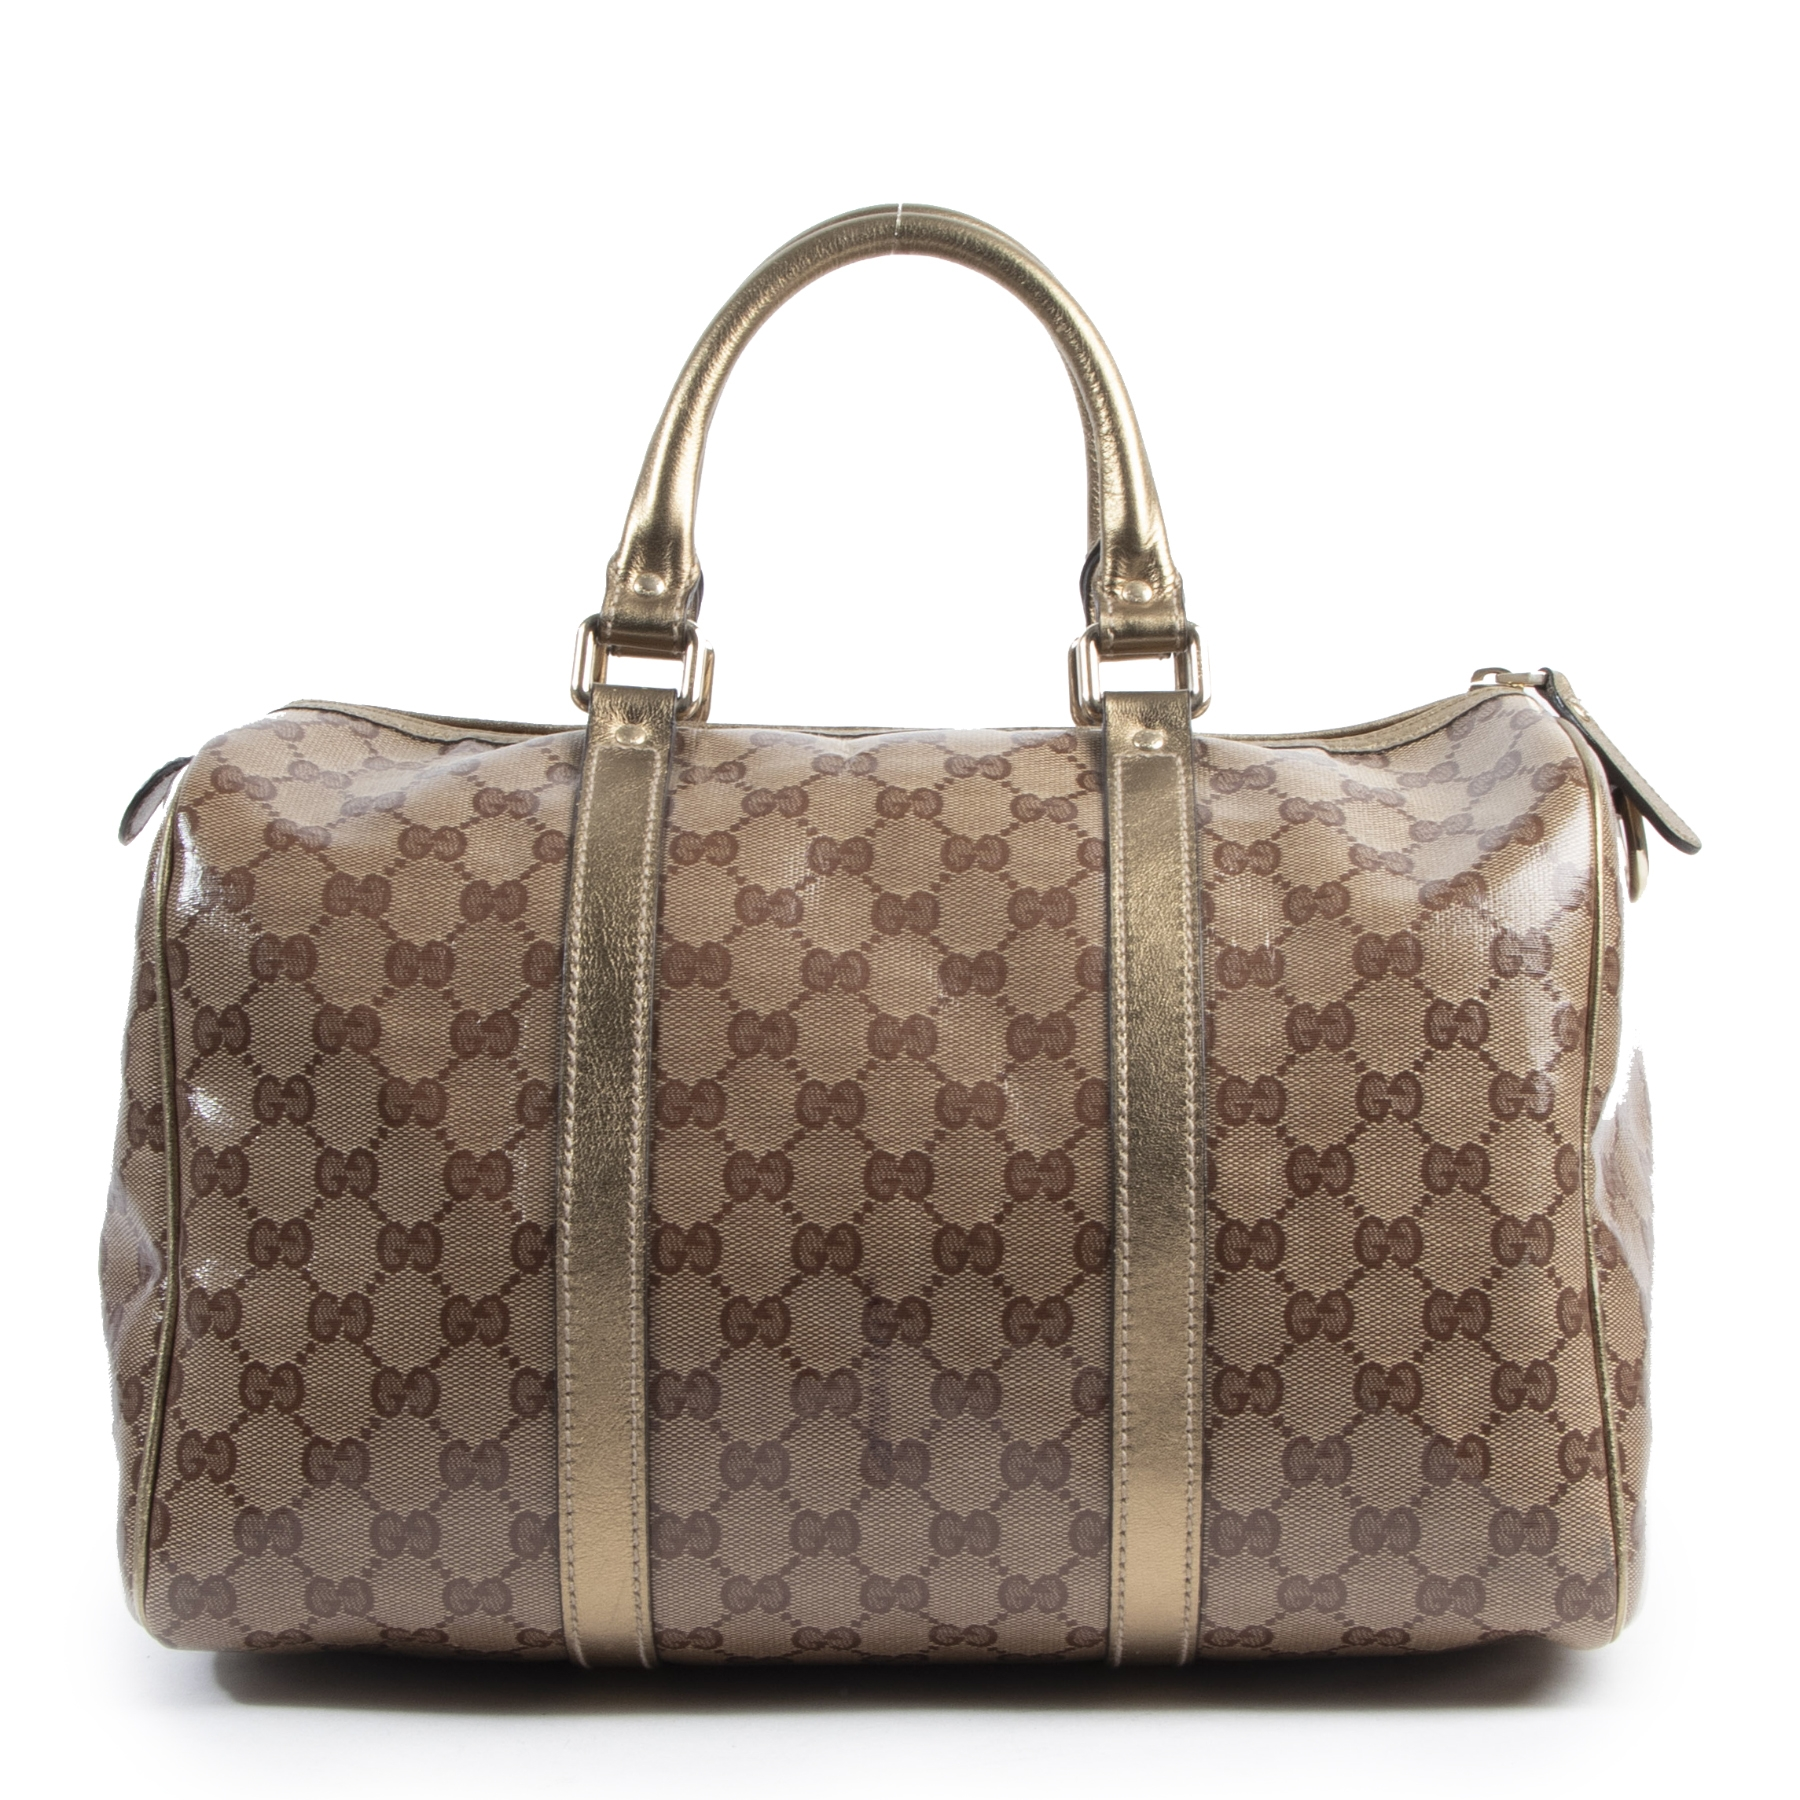 Buy and sell 100% authentic Gucci Metallic Gold Boston Bag